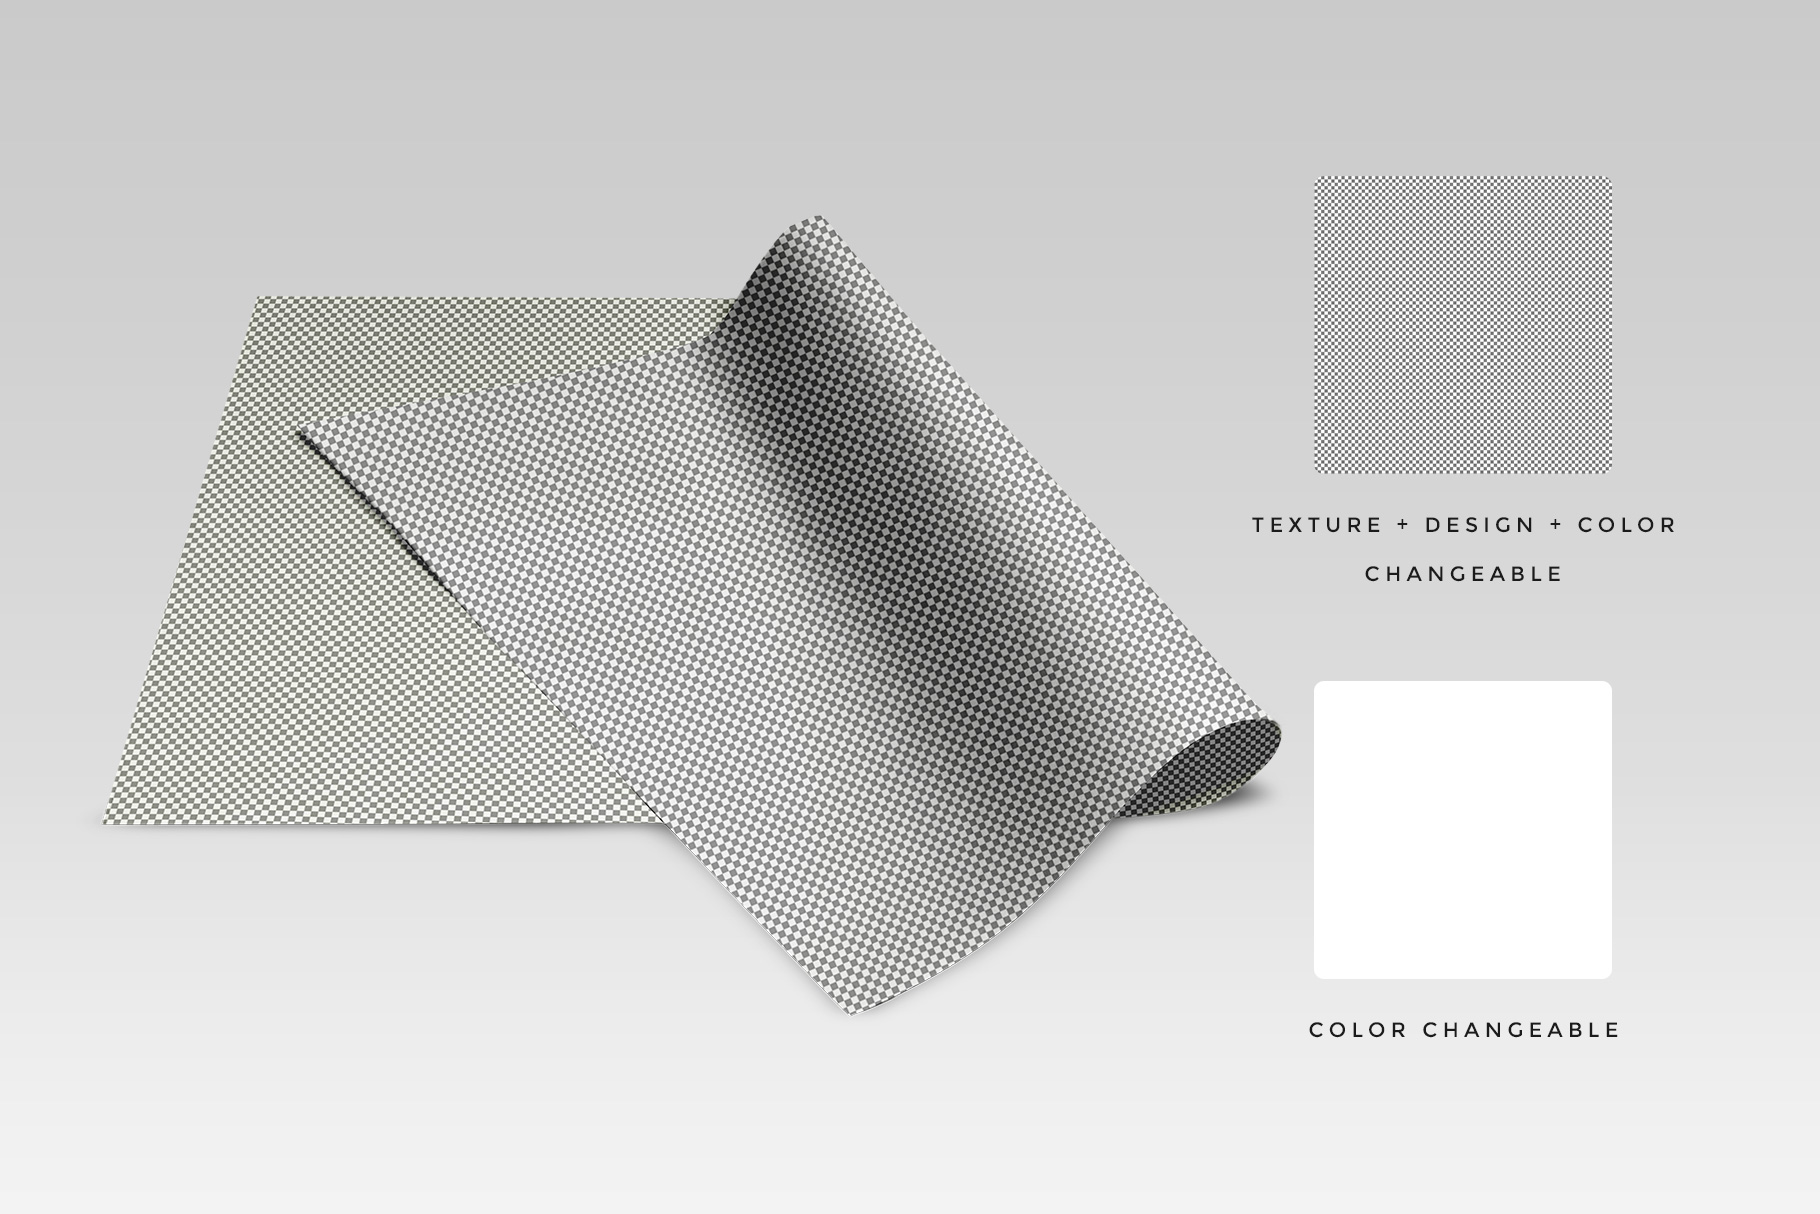 editability of the top view folded wrapping paper mockup